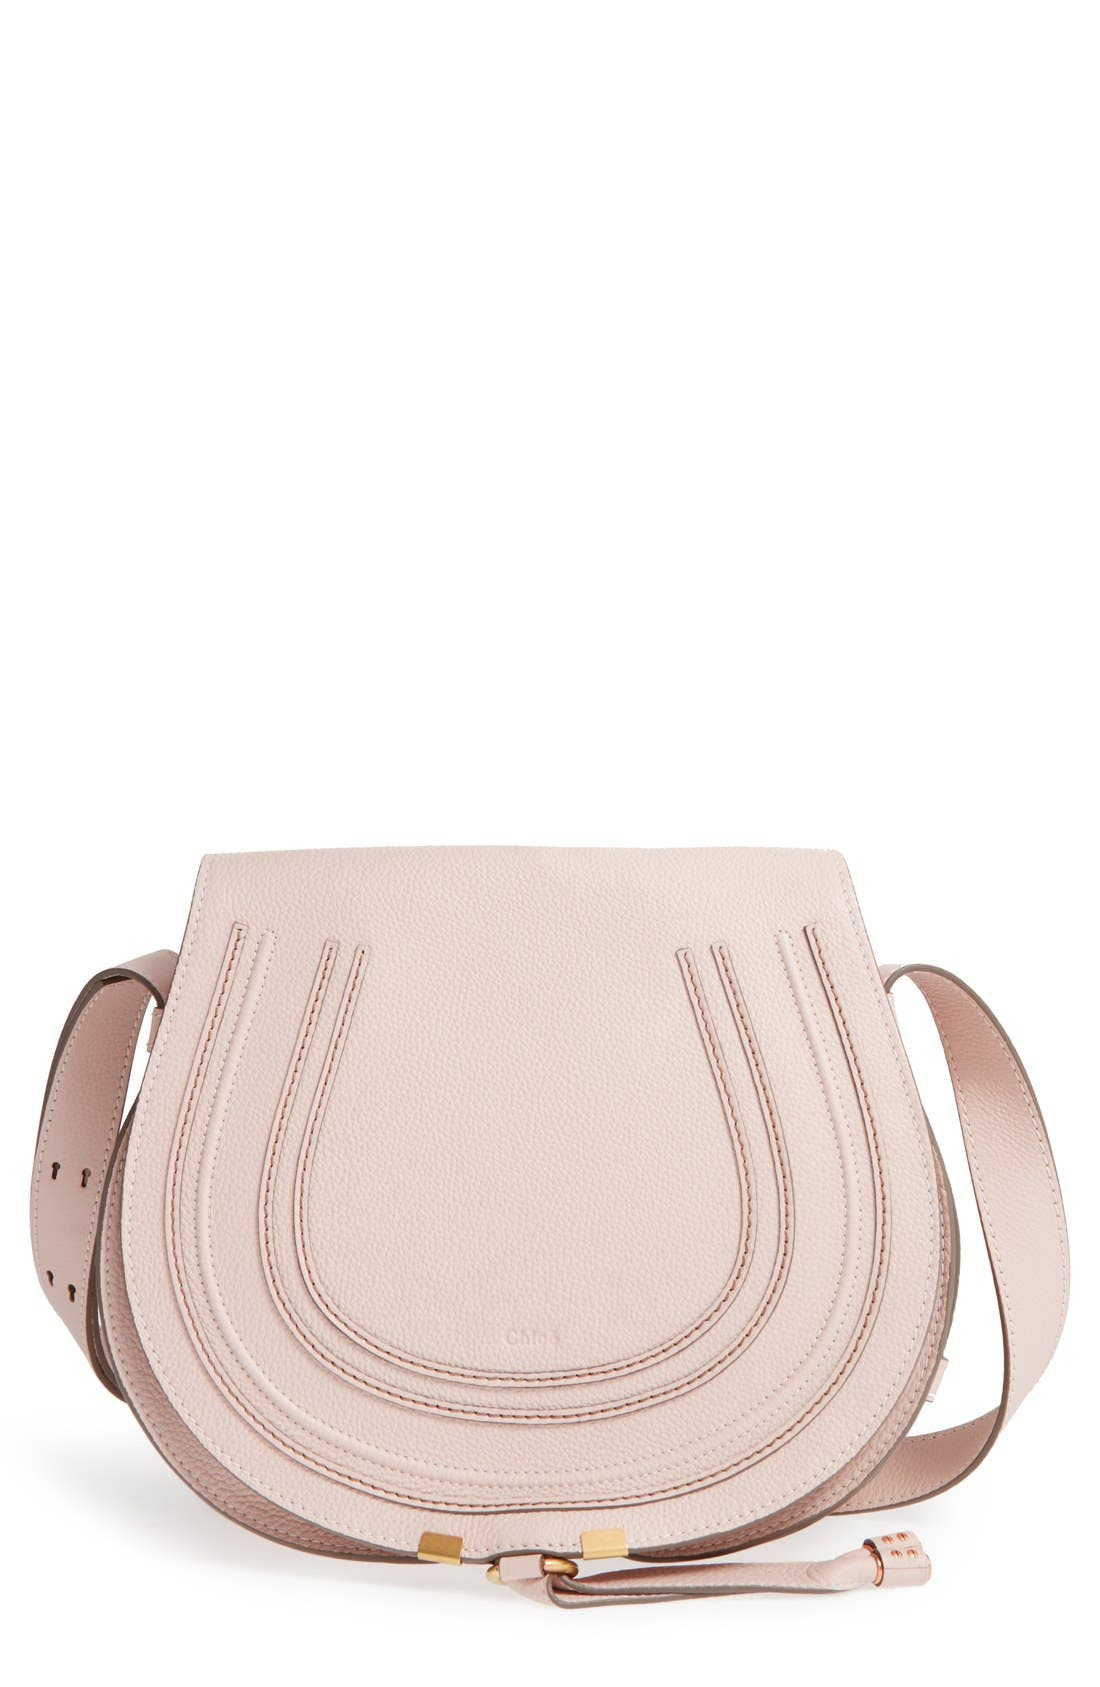 'Marcie - Medium' Leather Crossbody Bag,                             Main thumbnail 1, color,                             Abstract White